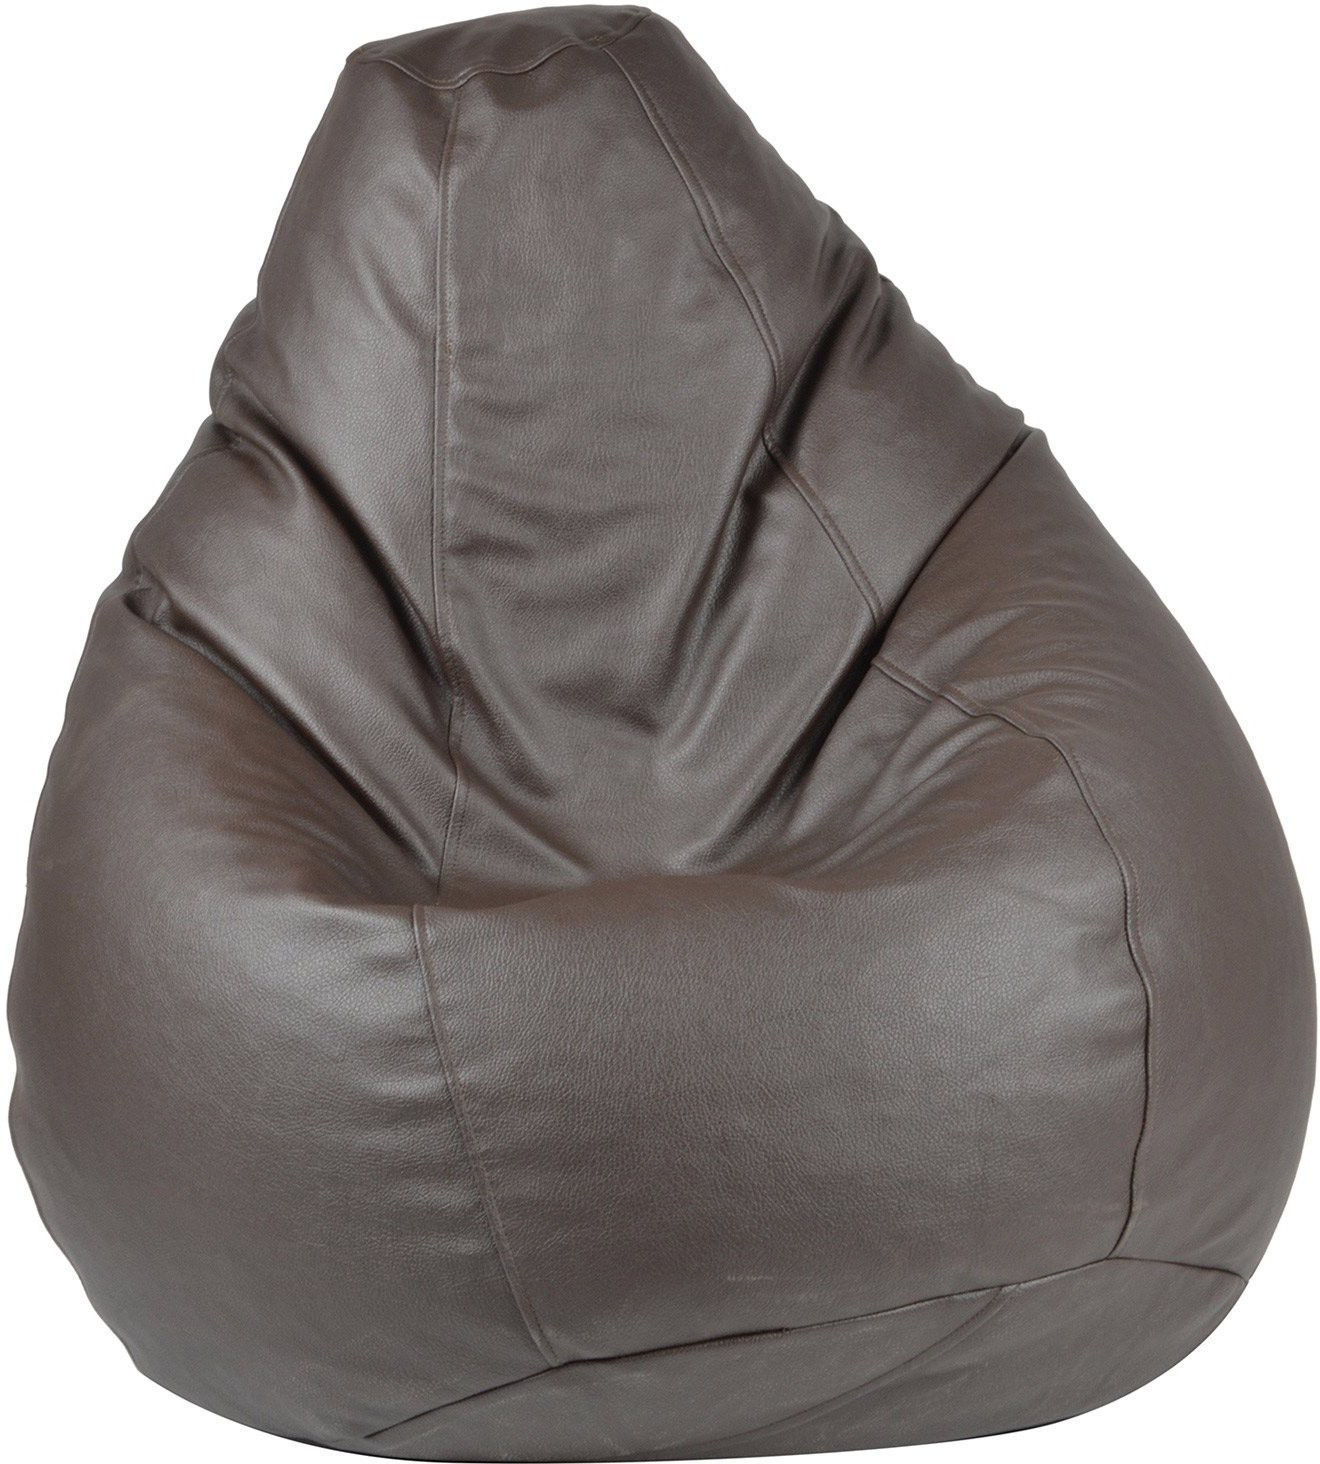 View Galaxy Decorz XXL Bean Bag Cover(Brown) Furniture (Galaxy Decorz)